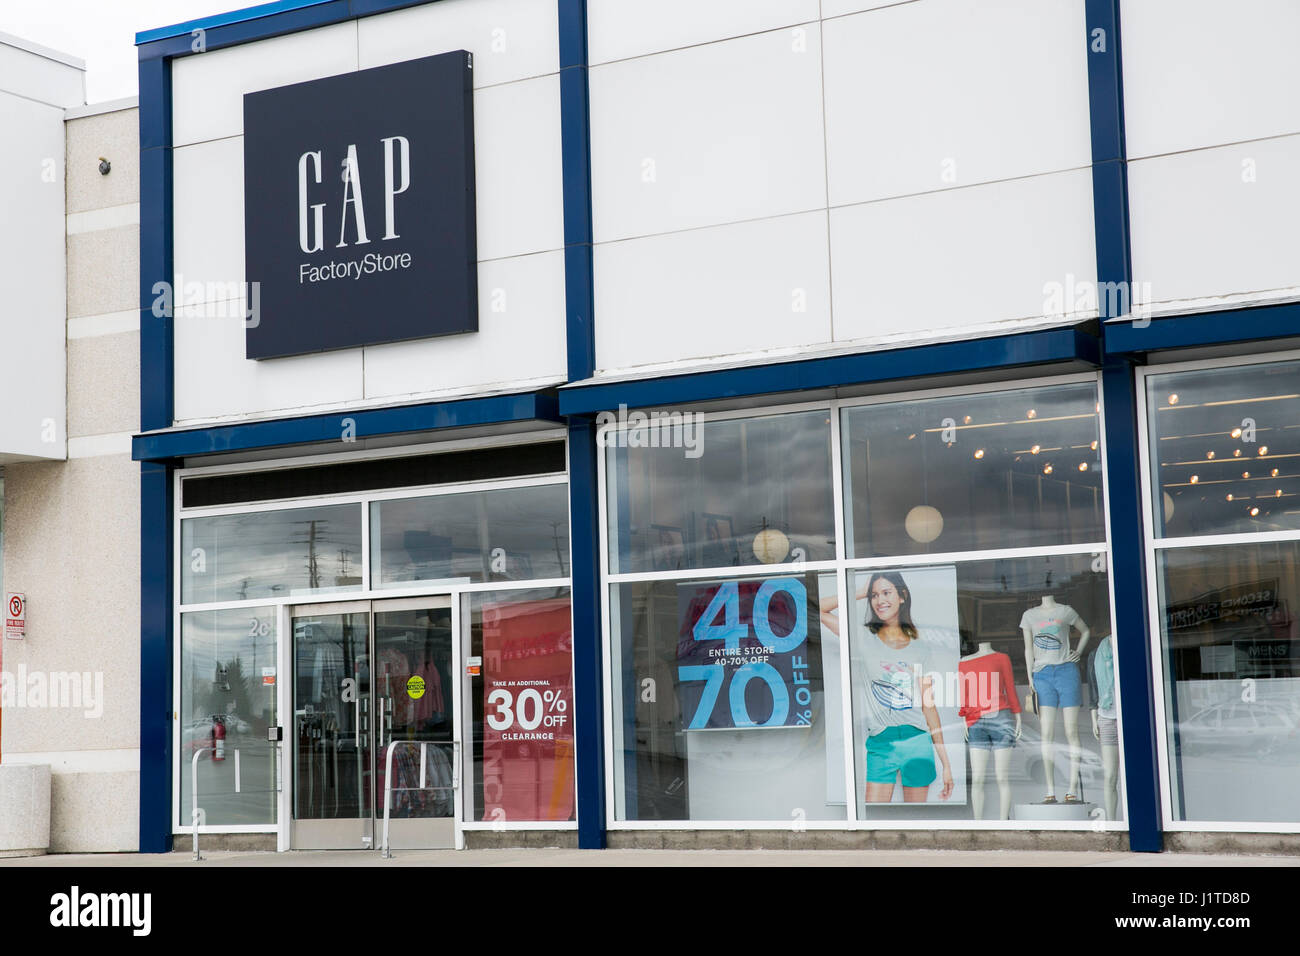 8887570ede209 A logo sign outside of a Gap Factory retail store in Mississauga, Ontario,  Canada, on April 16, 2017.